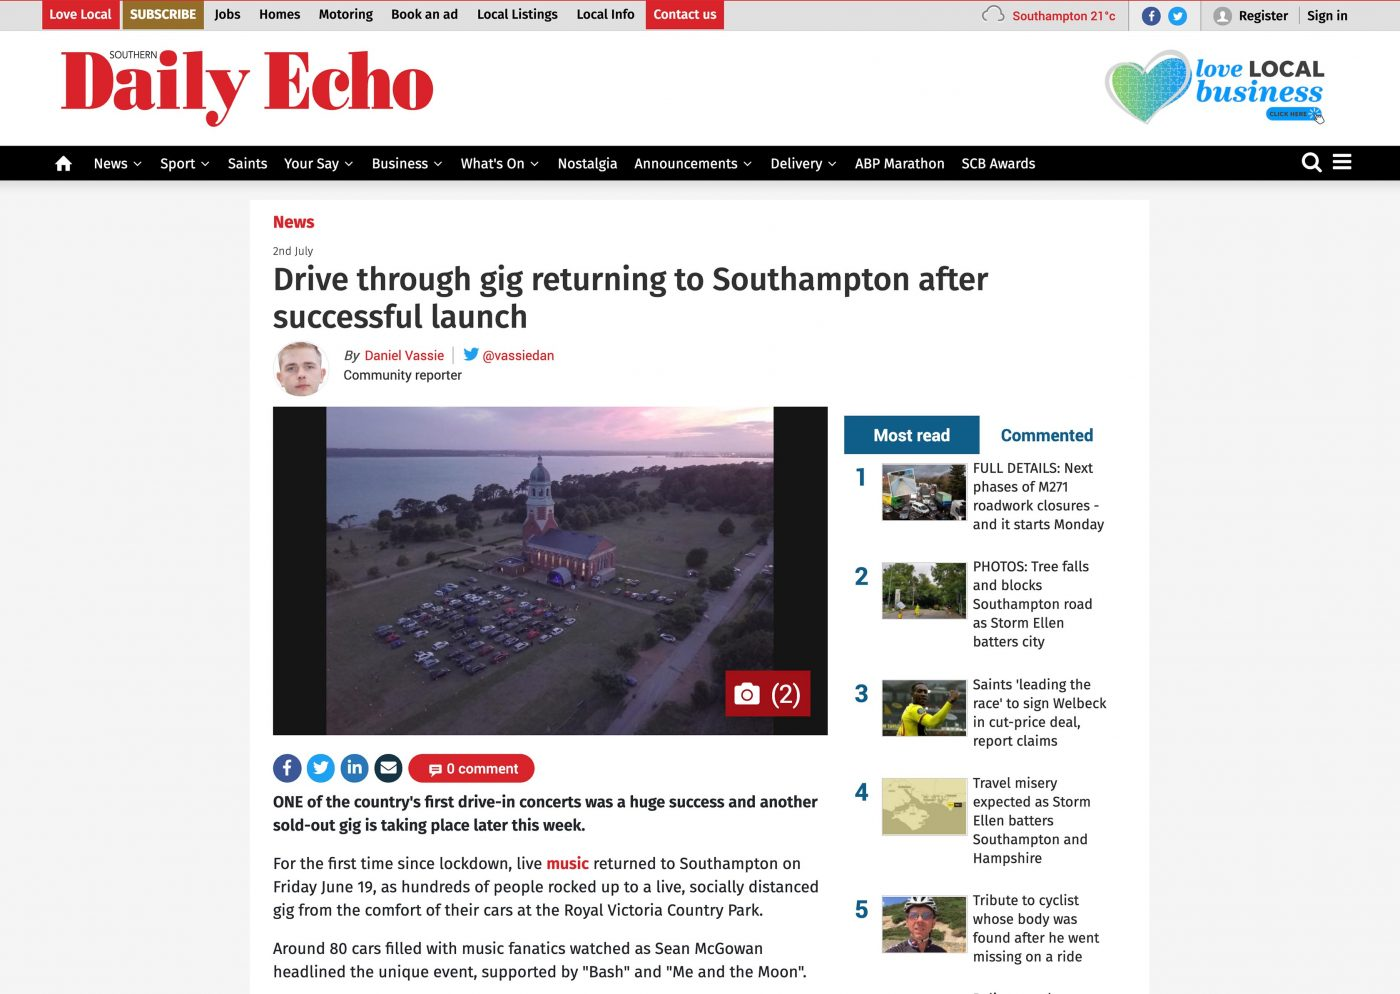 Southern Daily Echo coverage of the Sound Level Events post-lockdown gig, featuring a Southpoint Films aerial photo